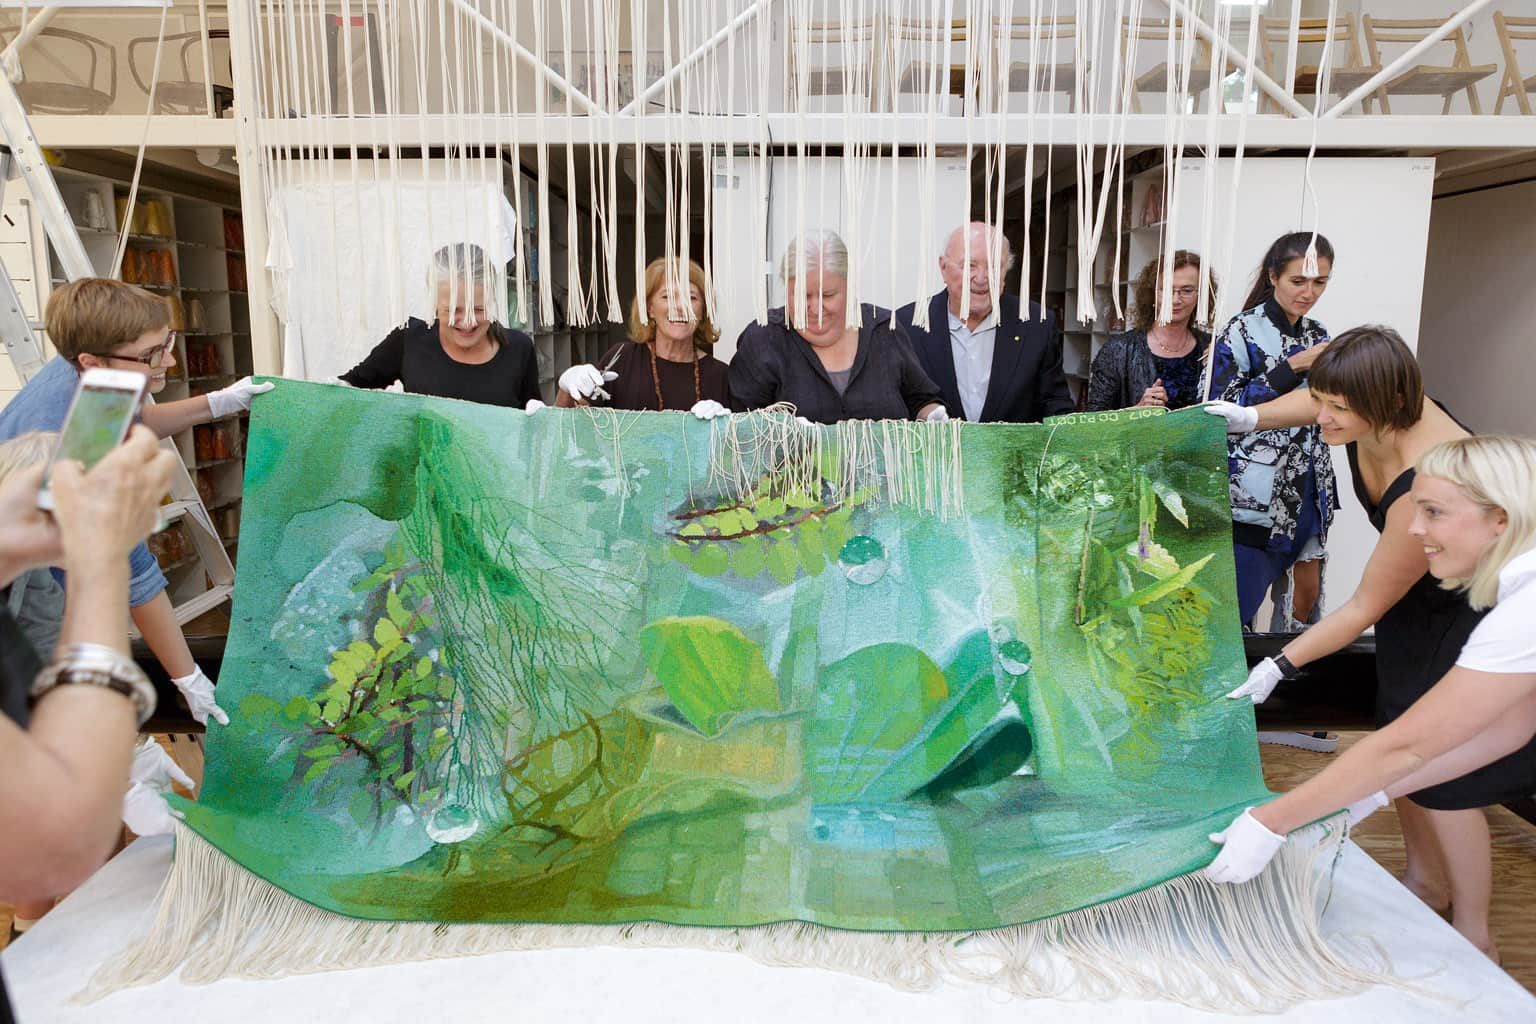 Cutting Off Ceremony for 'Listen, to the Sound of Plants' 2017, designed by Janet Laurence and woven by Chris Cochius, Pamela Joyce & Cheryl Thornton, wool and cotton, 1.2 x 2.4m. Image: Jeremy Weihrauch